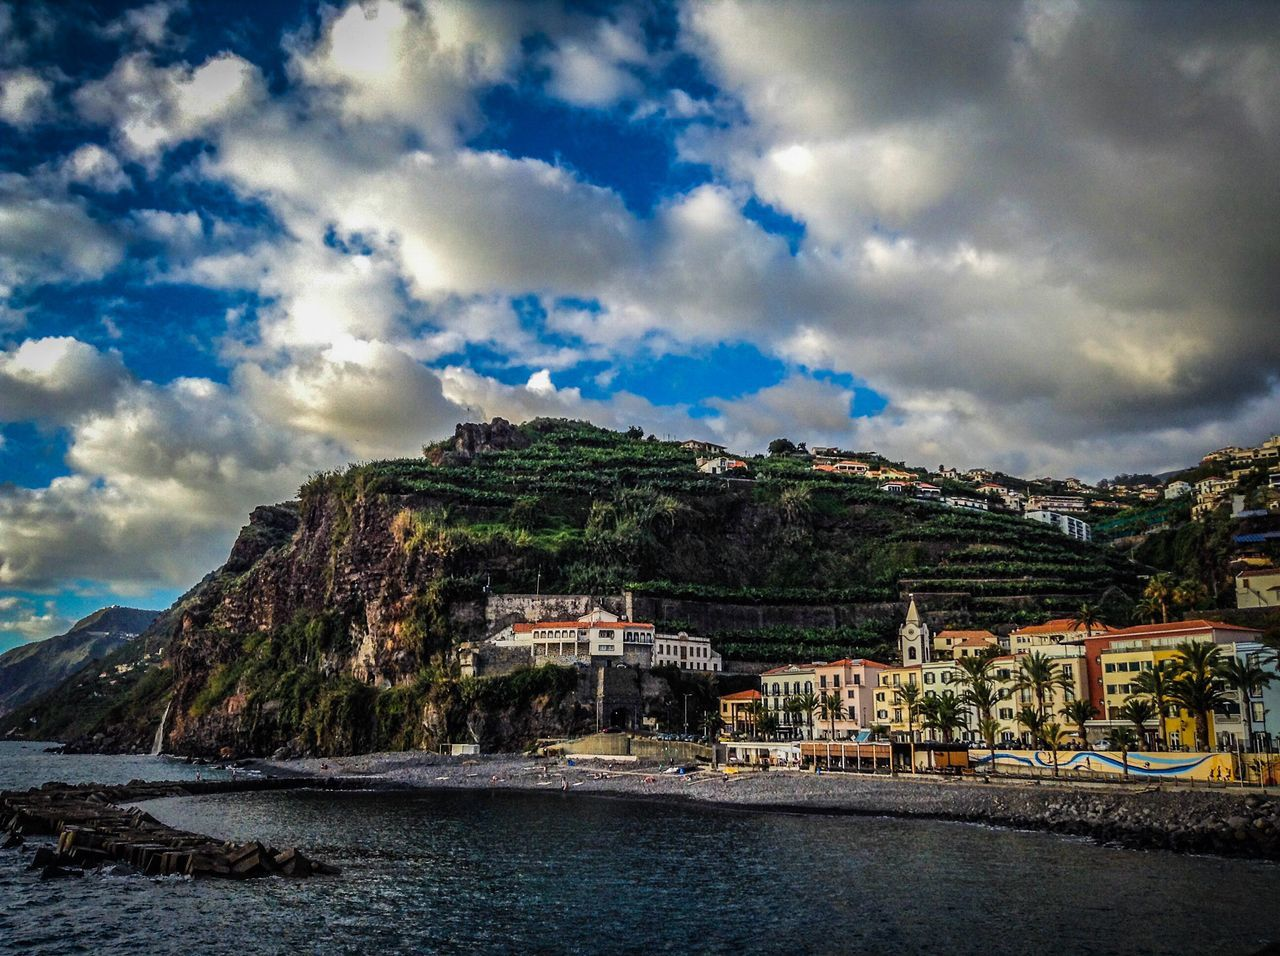 Cloud - Sky Sky Mountain Built Structure Architecture Water Building Exterior Day No People Outdoors Scenics Waterfront Nature Tranquility Beauty In Nature Lake Madeira Island Pontadosol